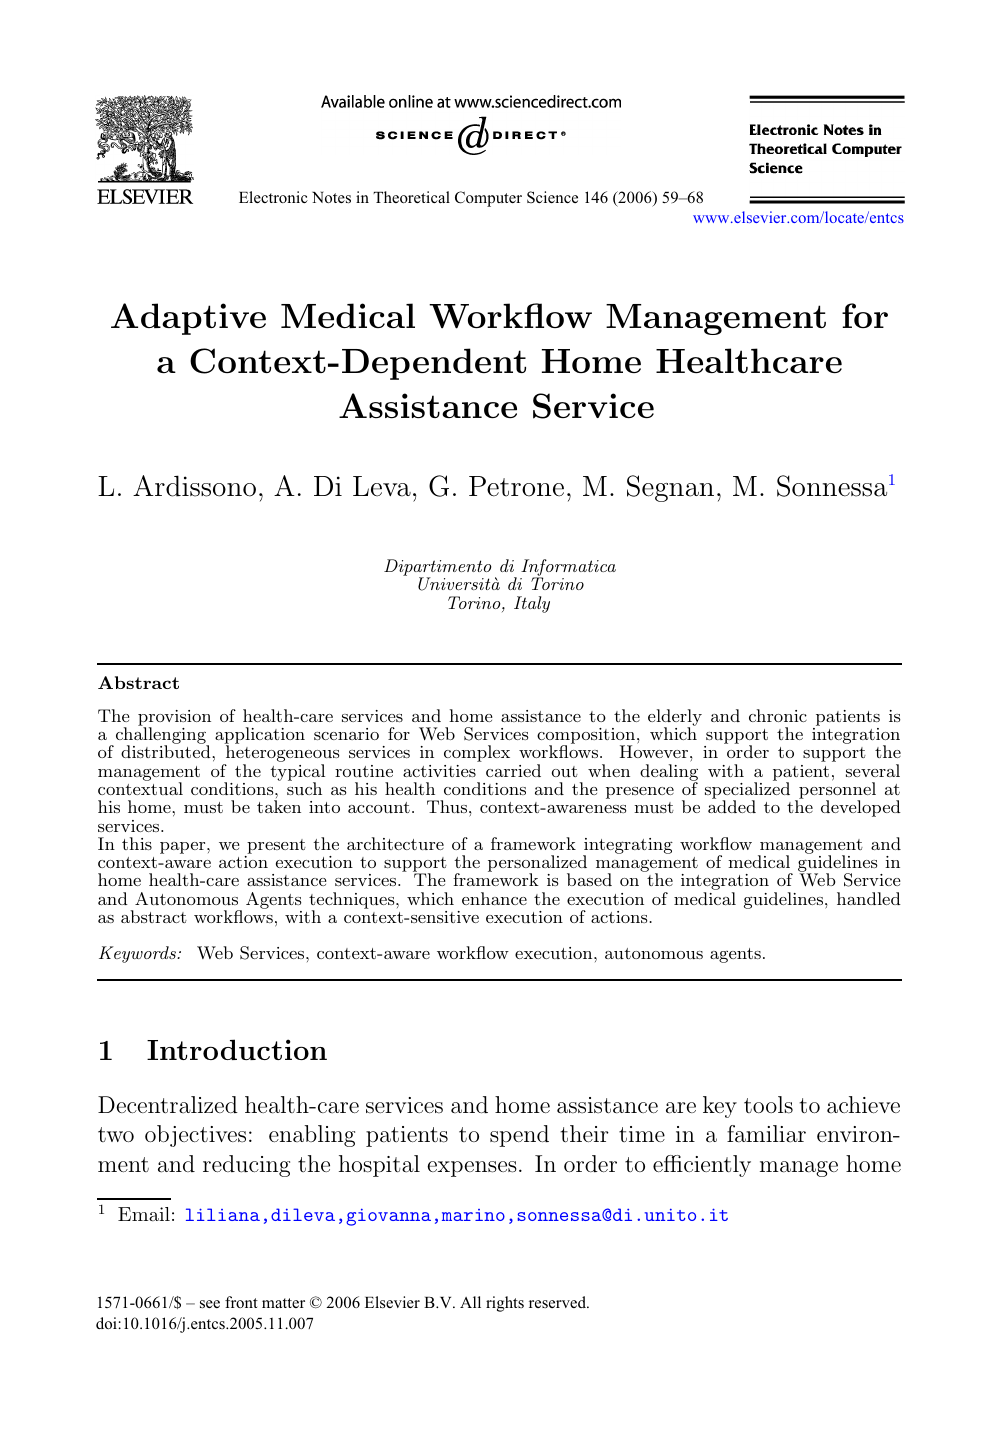 Adaptive Medical Workflow Management for a Context-Dependent Home